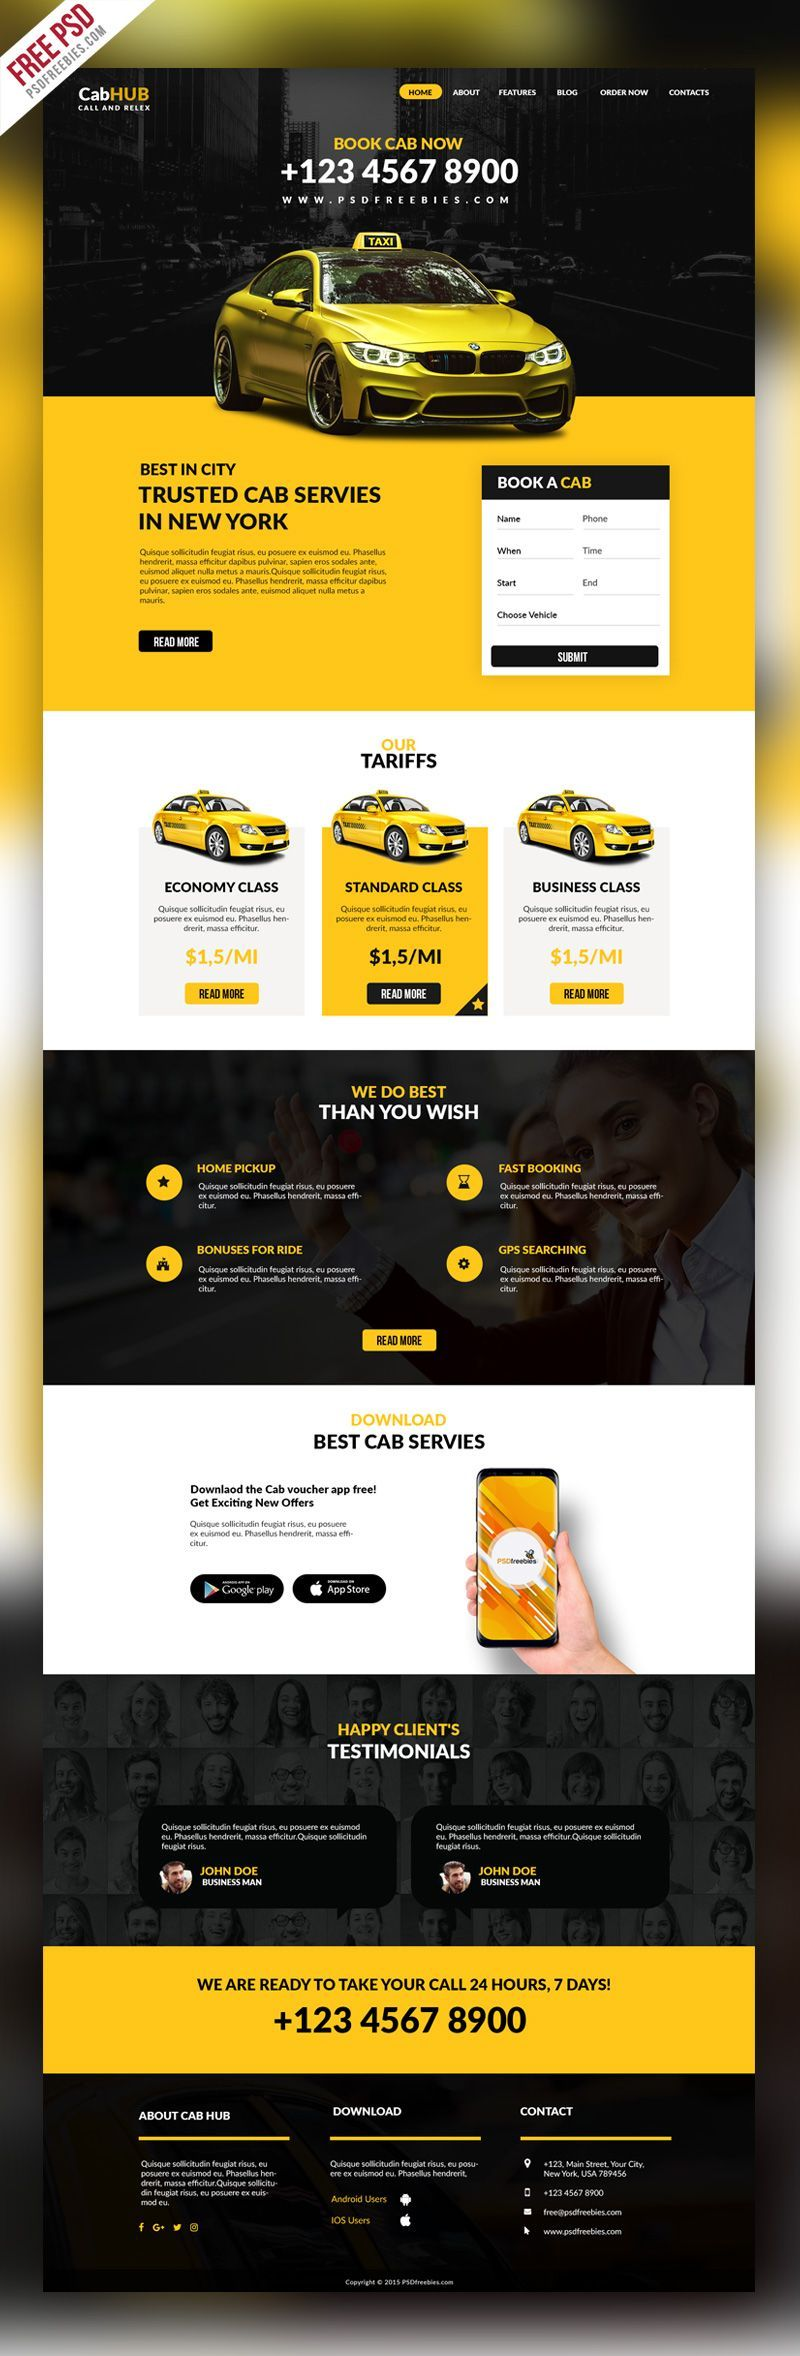 Download Free Taxi Cab Service Company Website Template